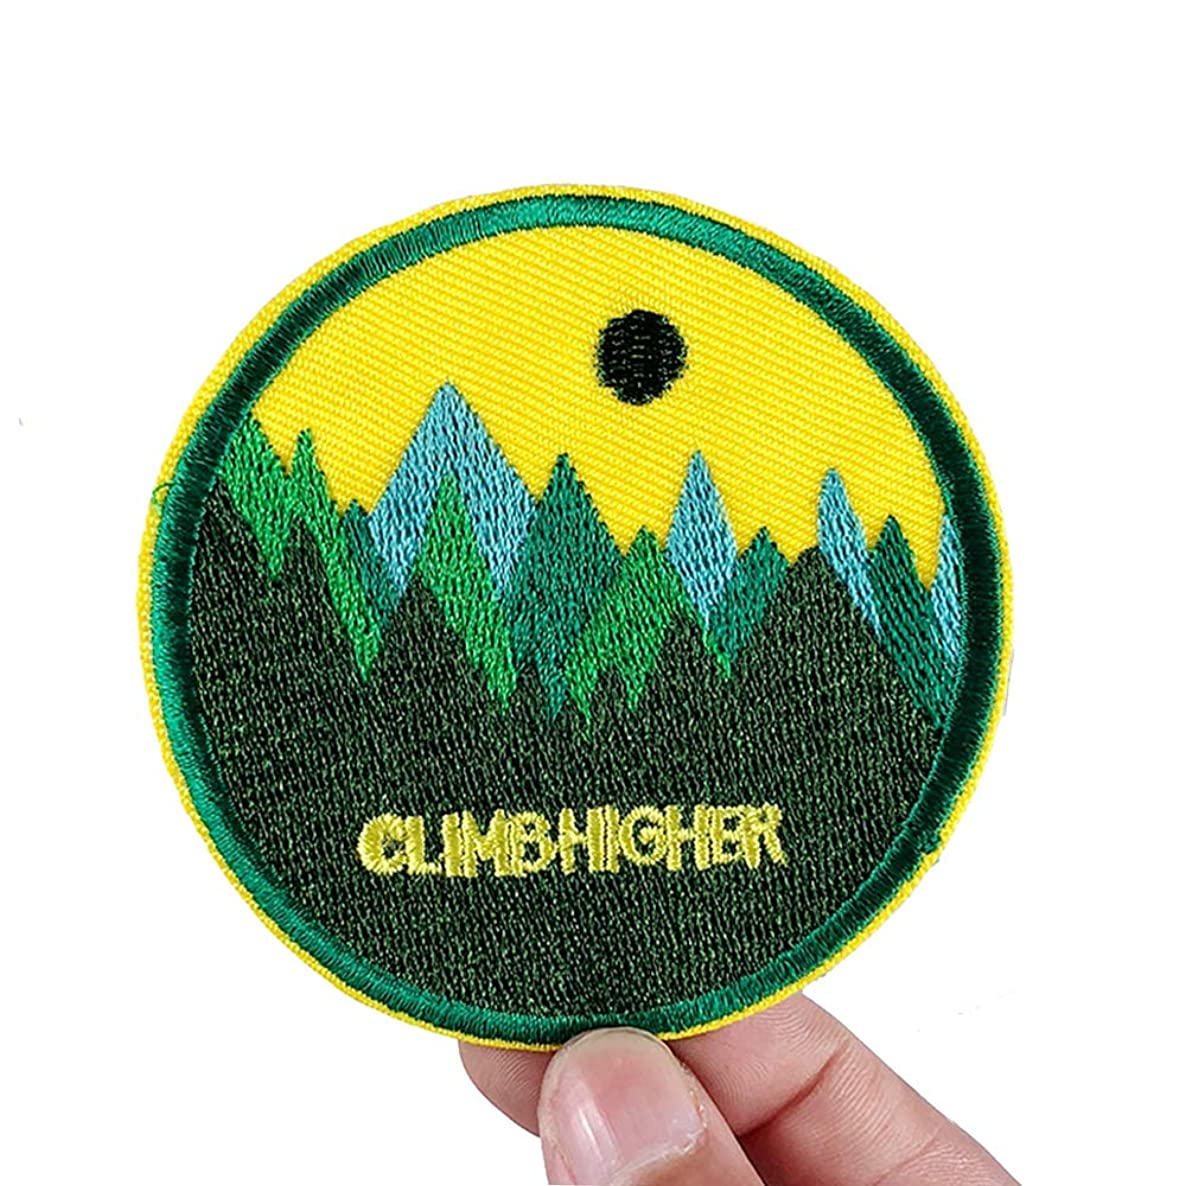 2 Pcs Climb Higher Delicate Embroidered Patches, Cute Embroidery Patches, Iron On Patches, Sew On Applique Patch,Cool Patches for Men, Women, Kids